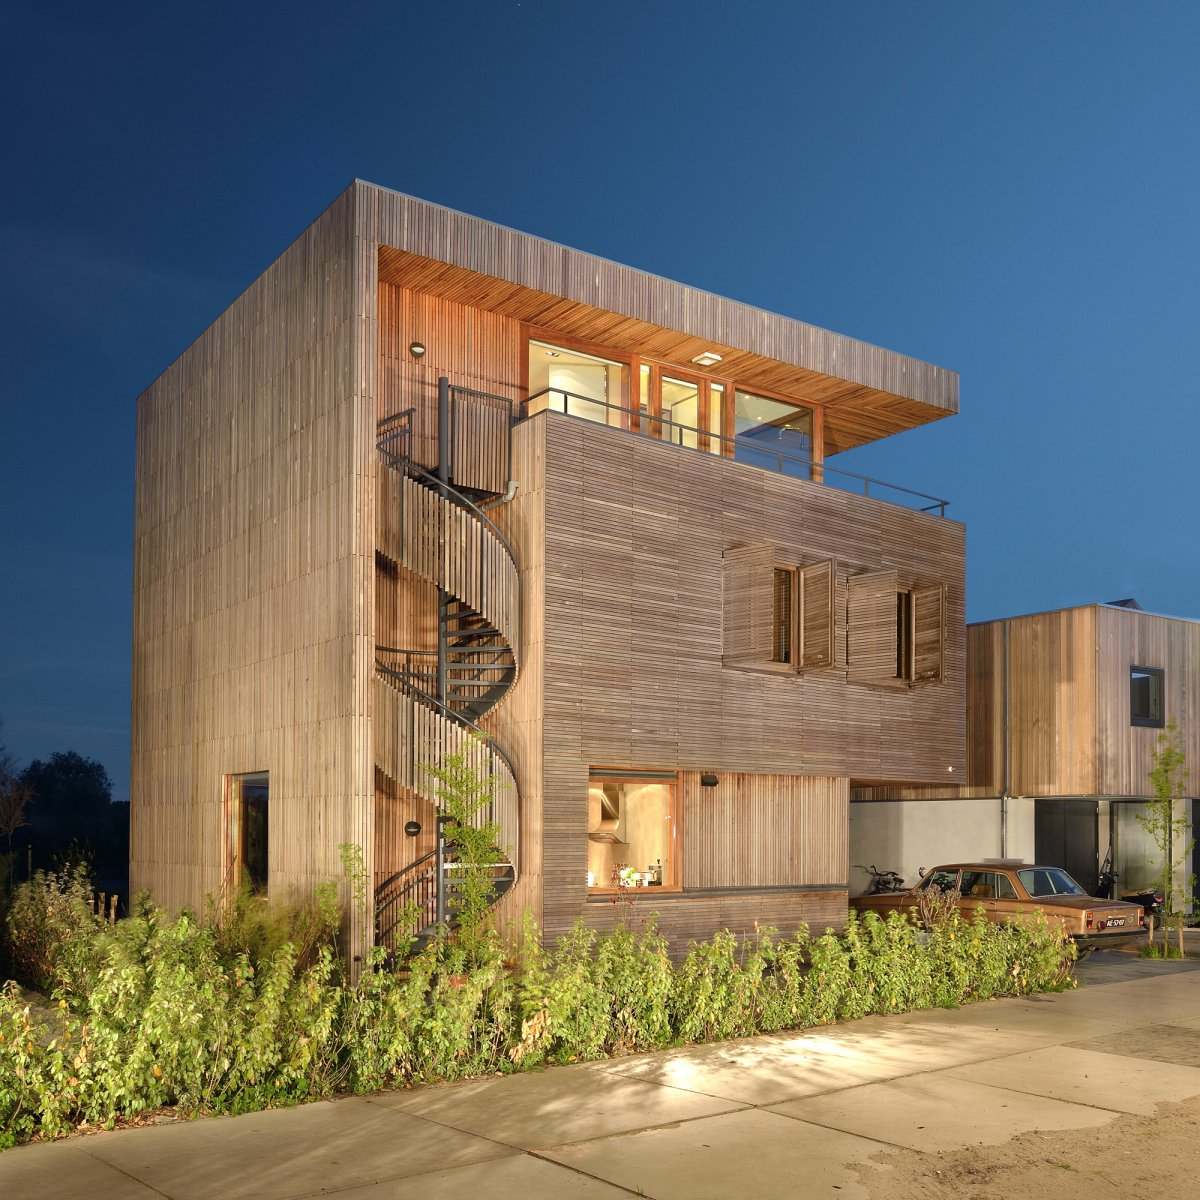 Architectural Design Of Residential Building Timber Architecture 10 Benefits Of Wood Based Designs Freshome